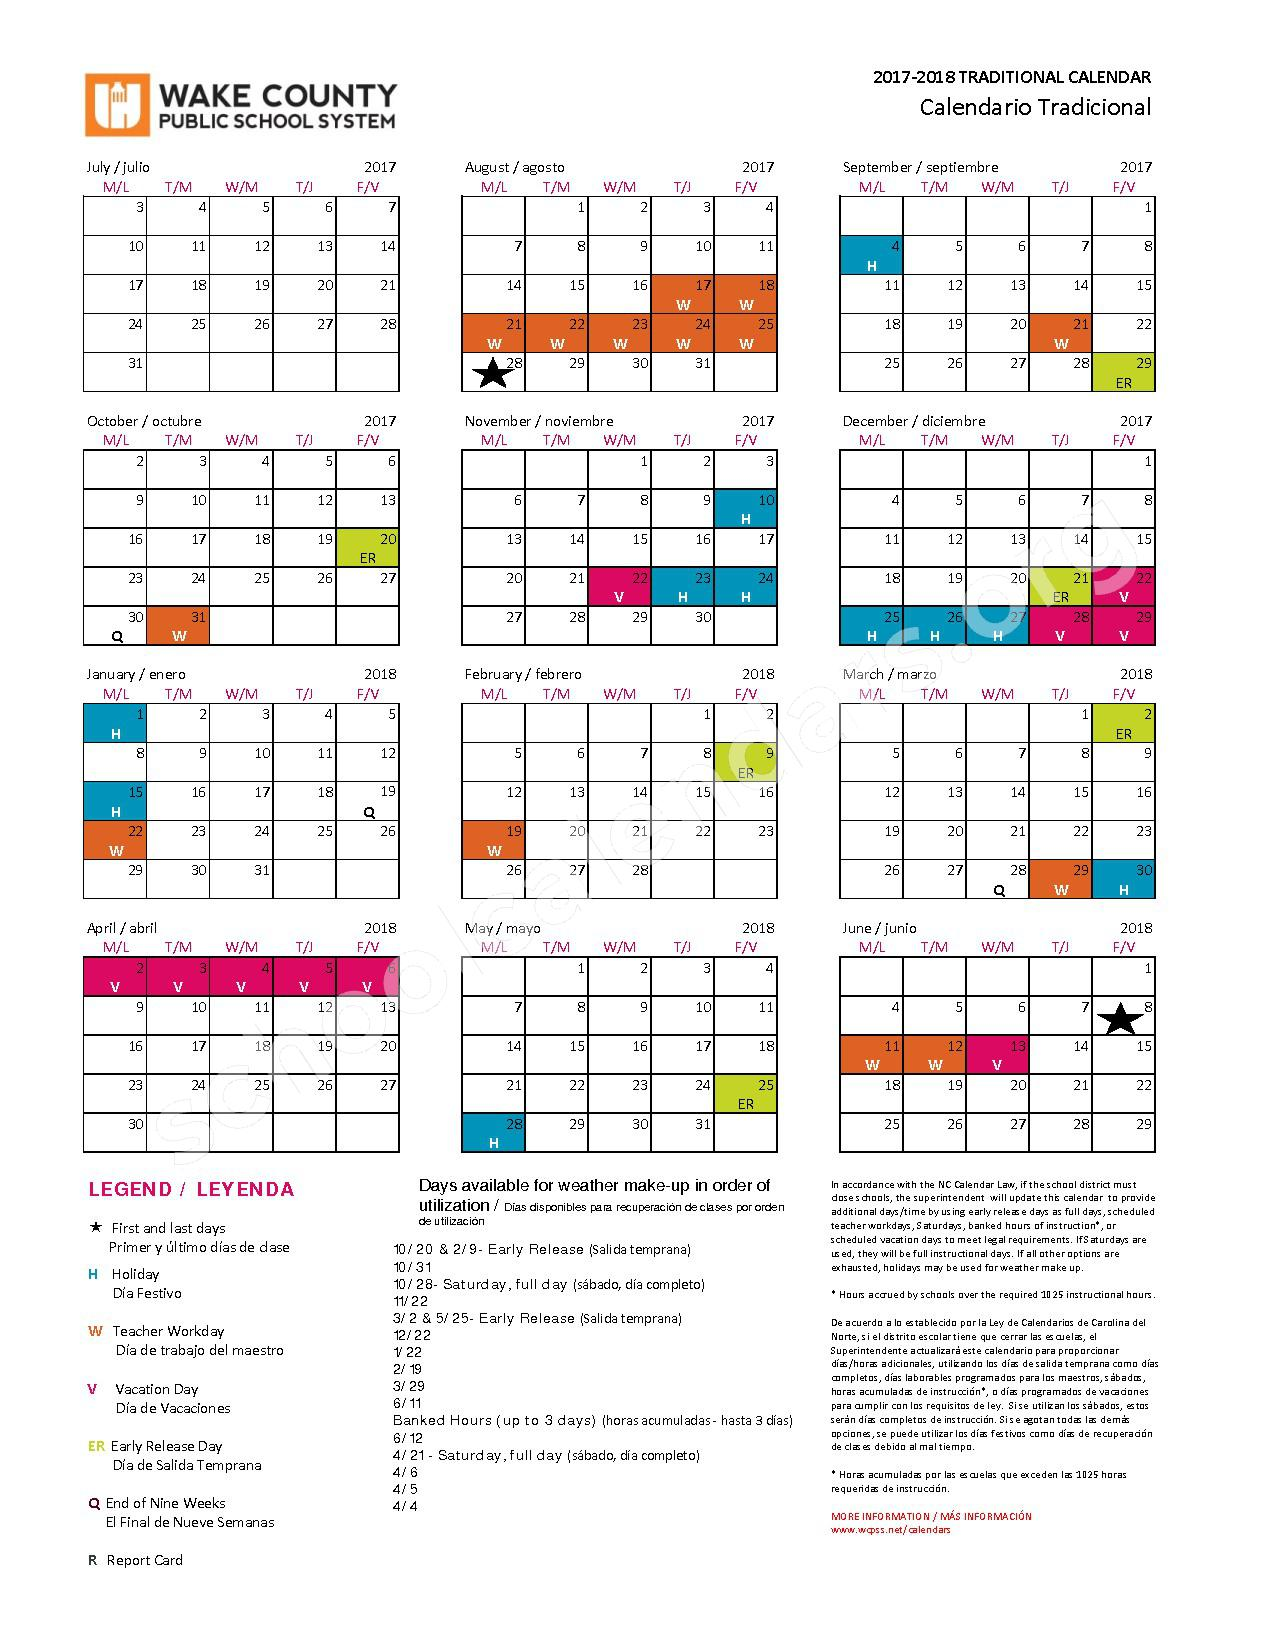 2017 - 2018 Traditional Calendar – Wake County Public School System – page 1